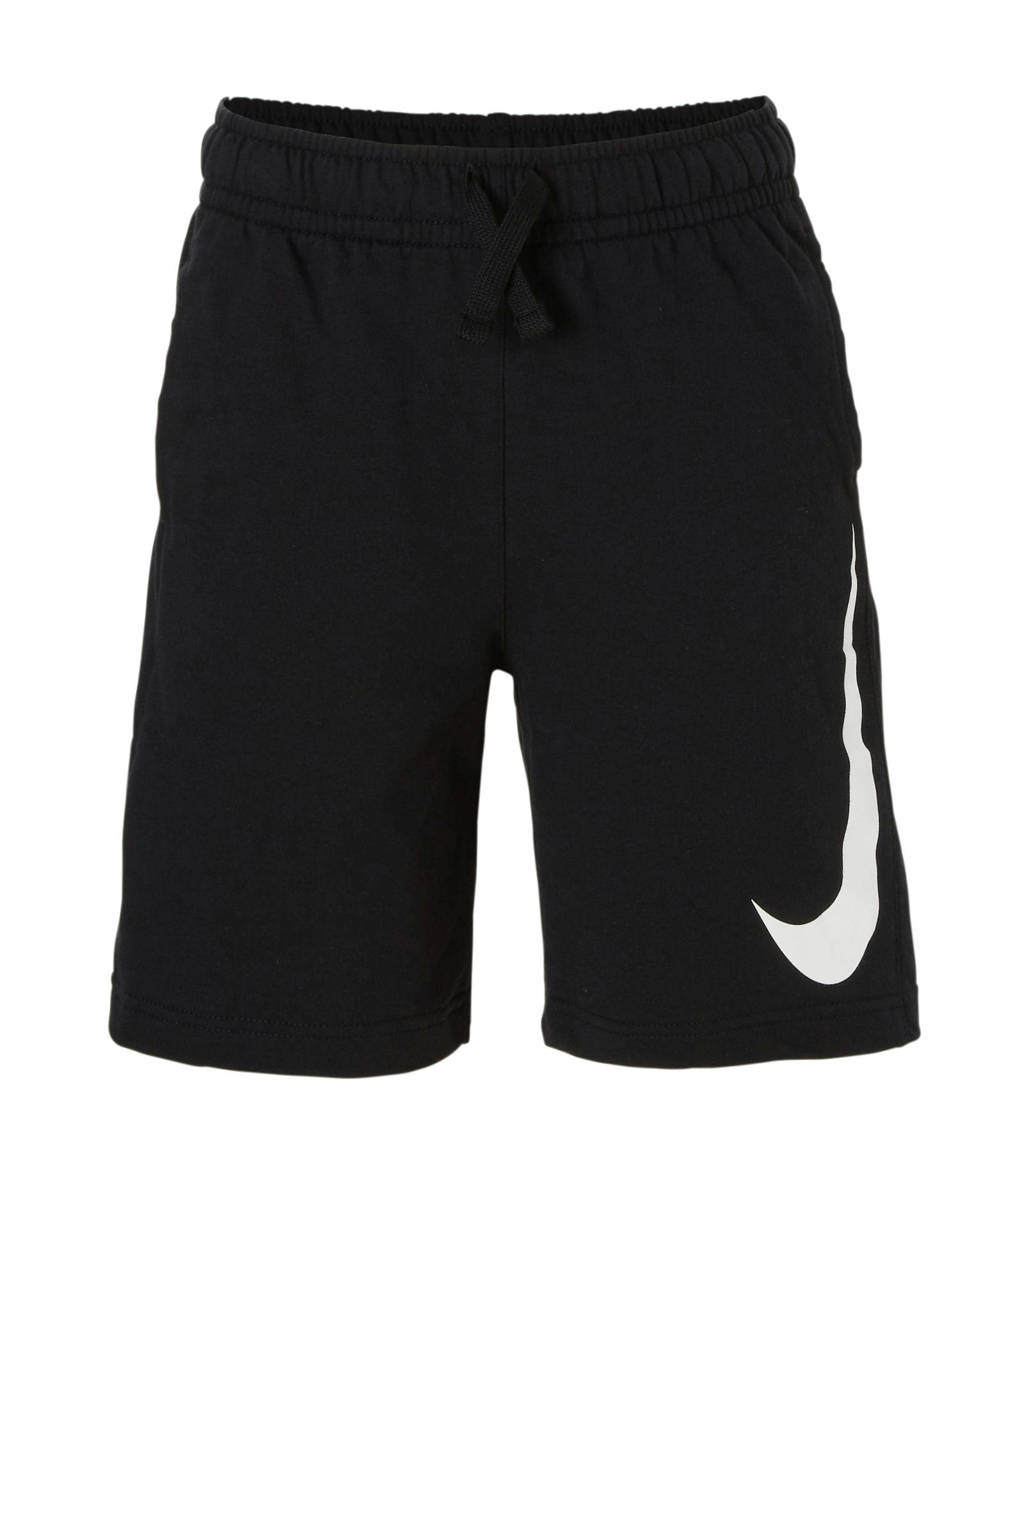 Nike regular fit short met printopdruk zwart, Zwart